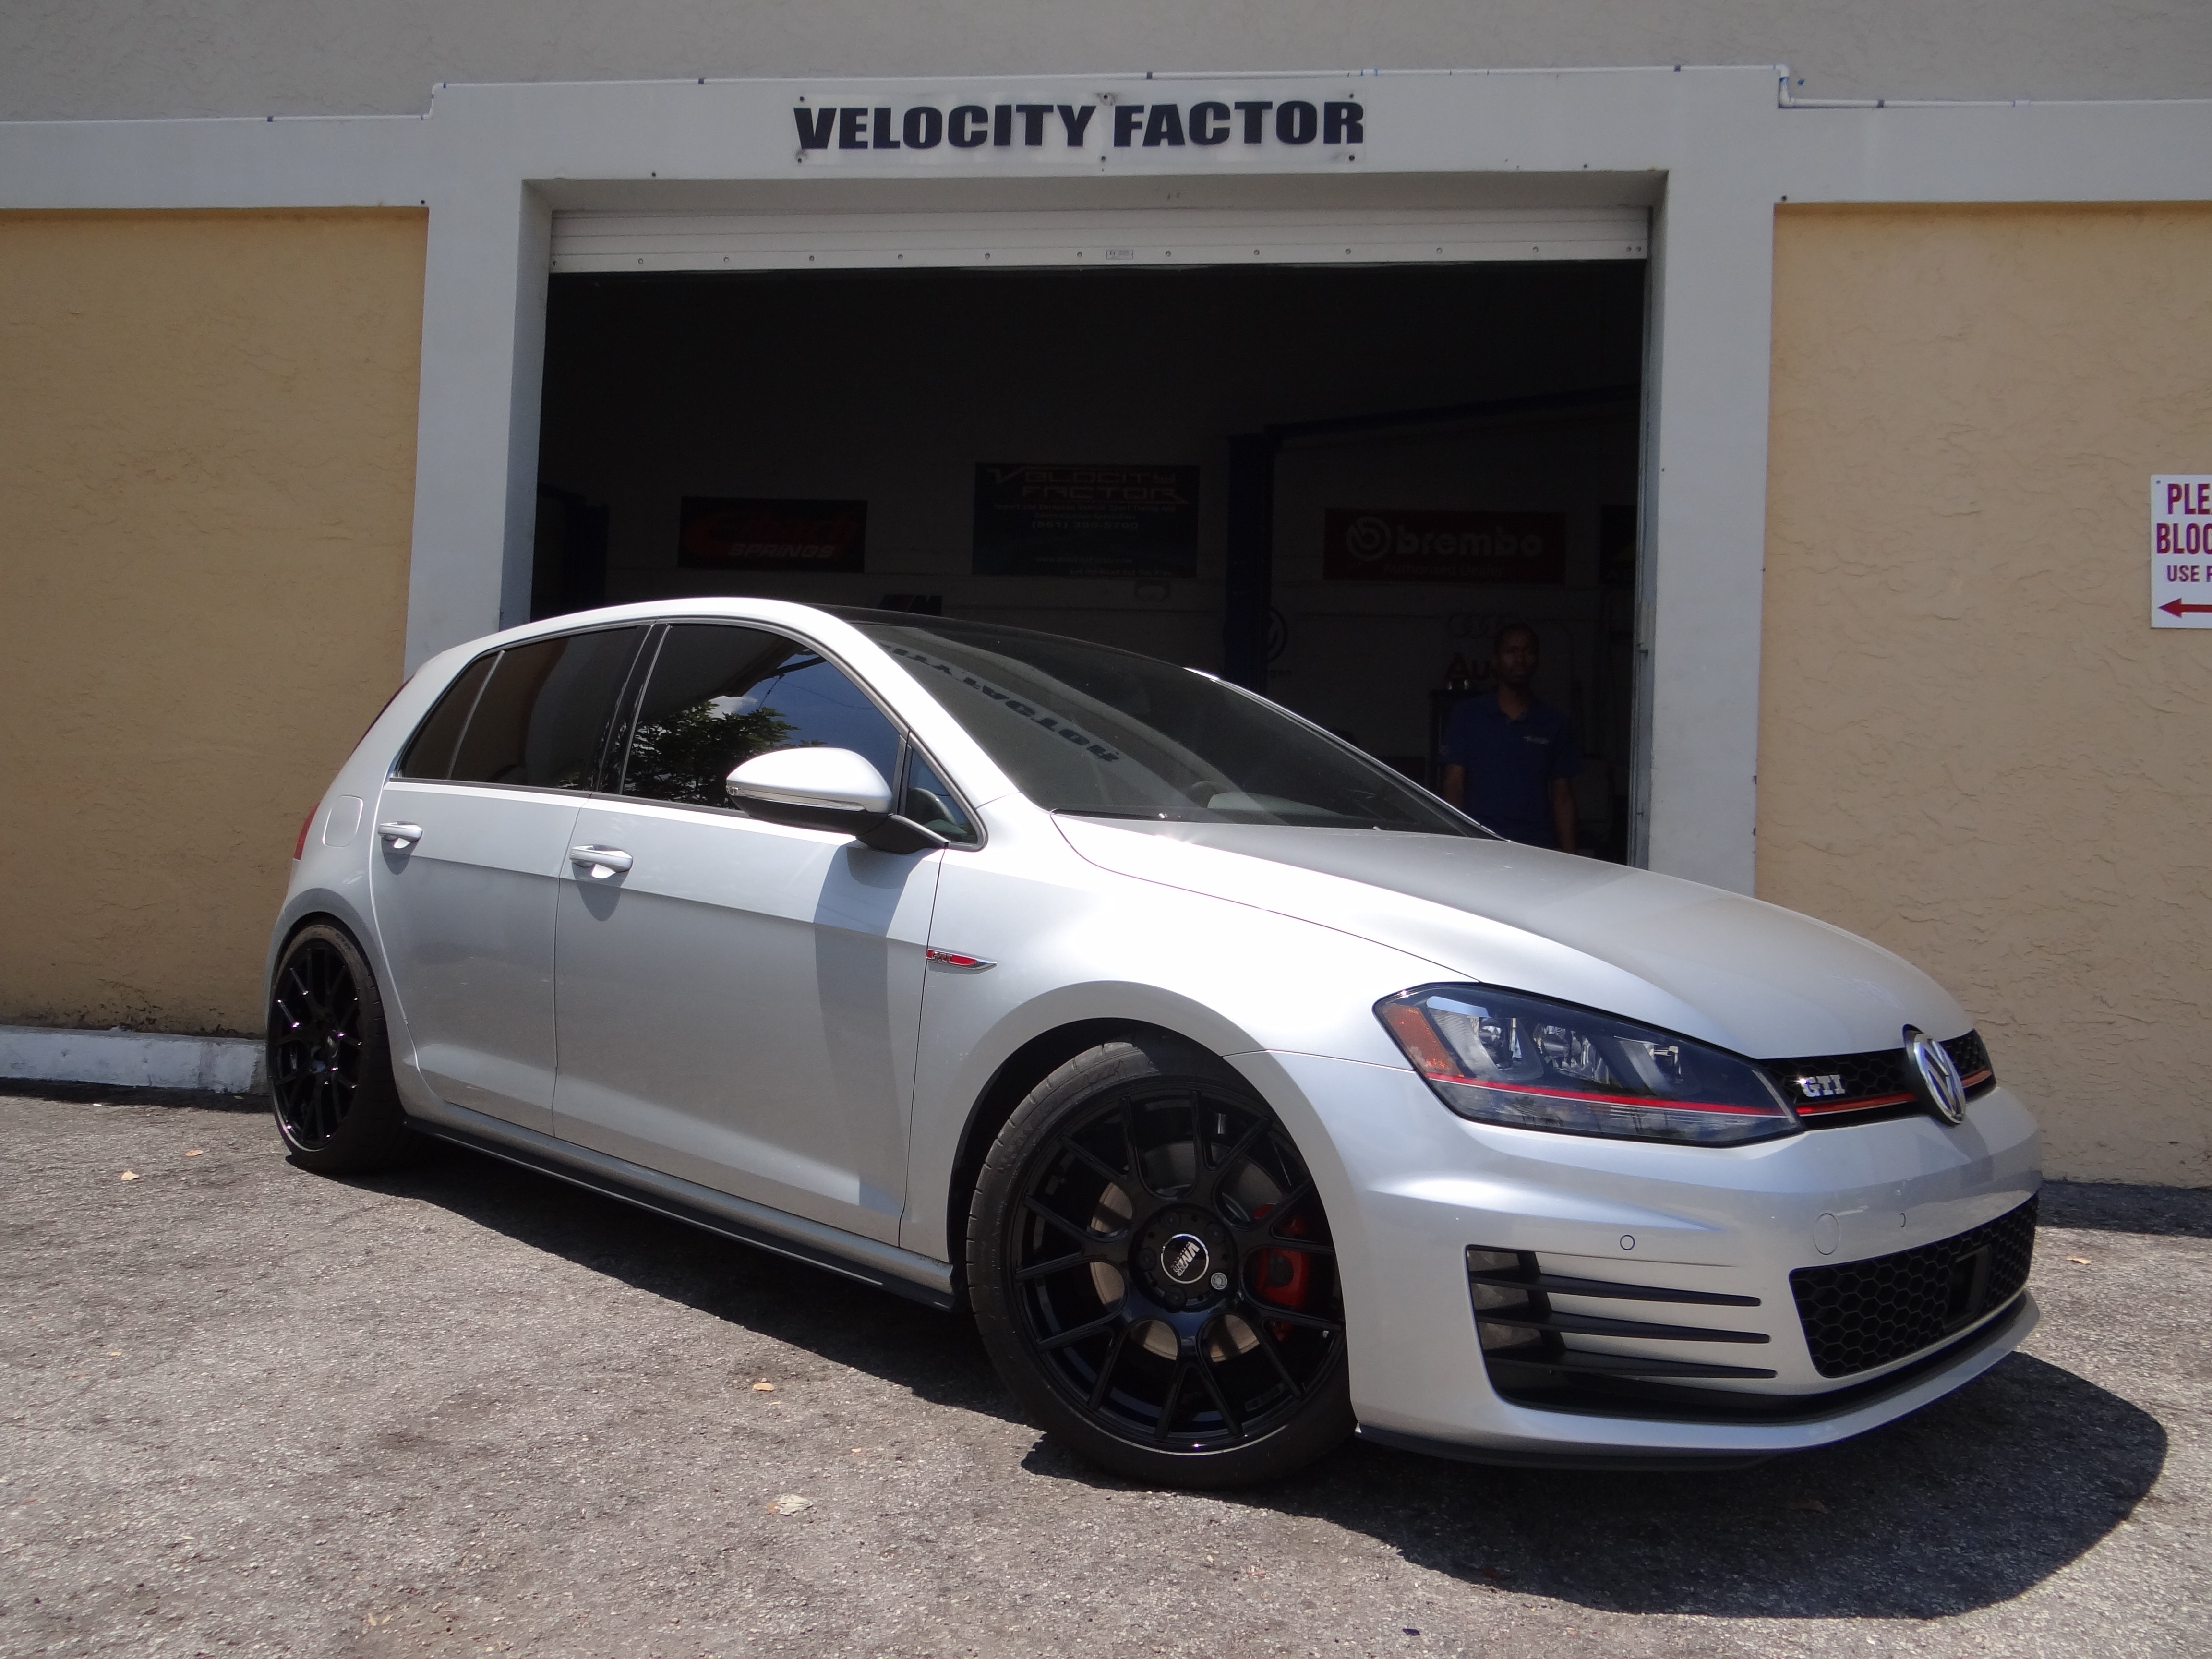 2015 vw gti mkvii mk7 vfr auto blog. Black Bedroom Furniture Sets. Home Design Ideas